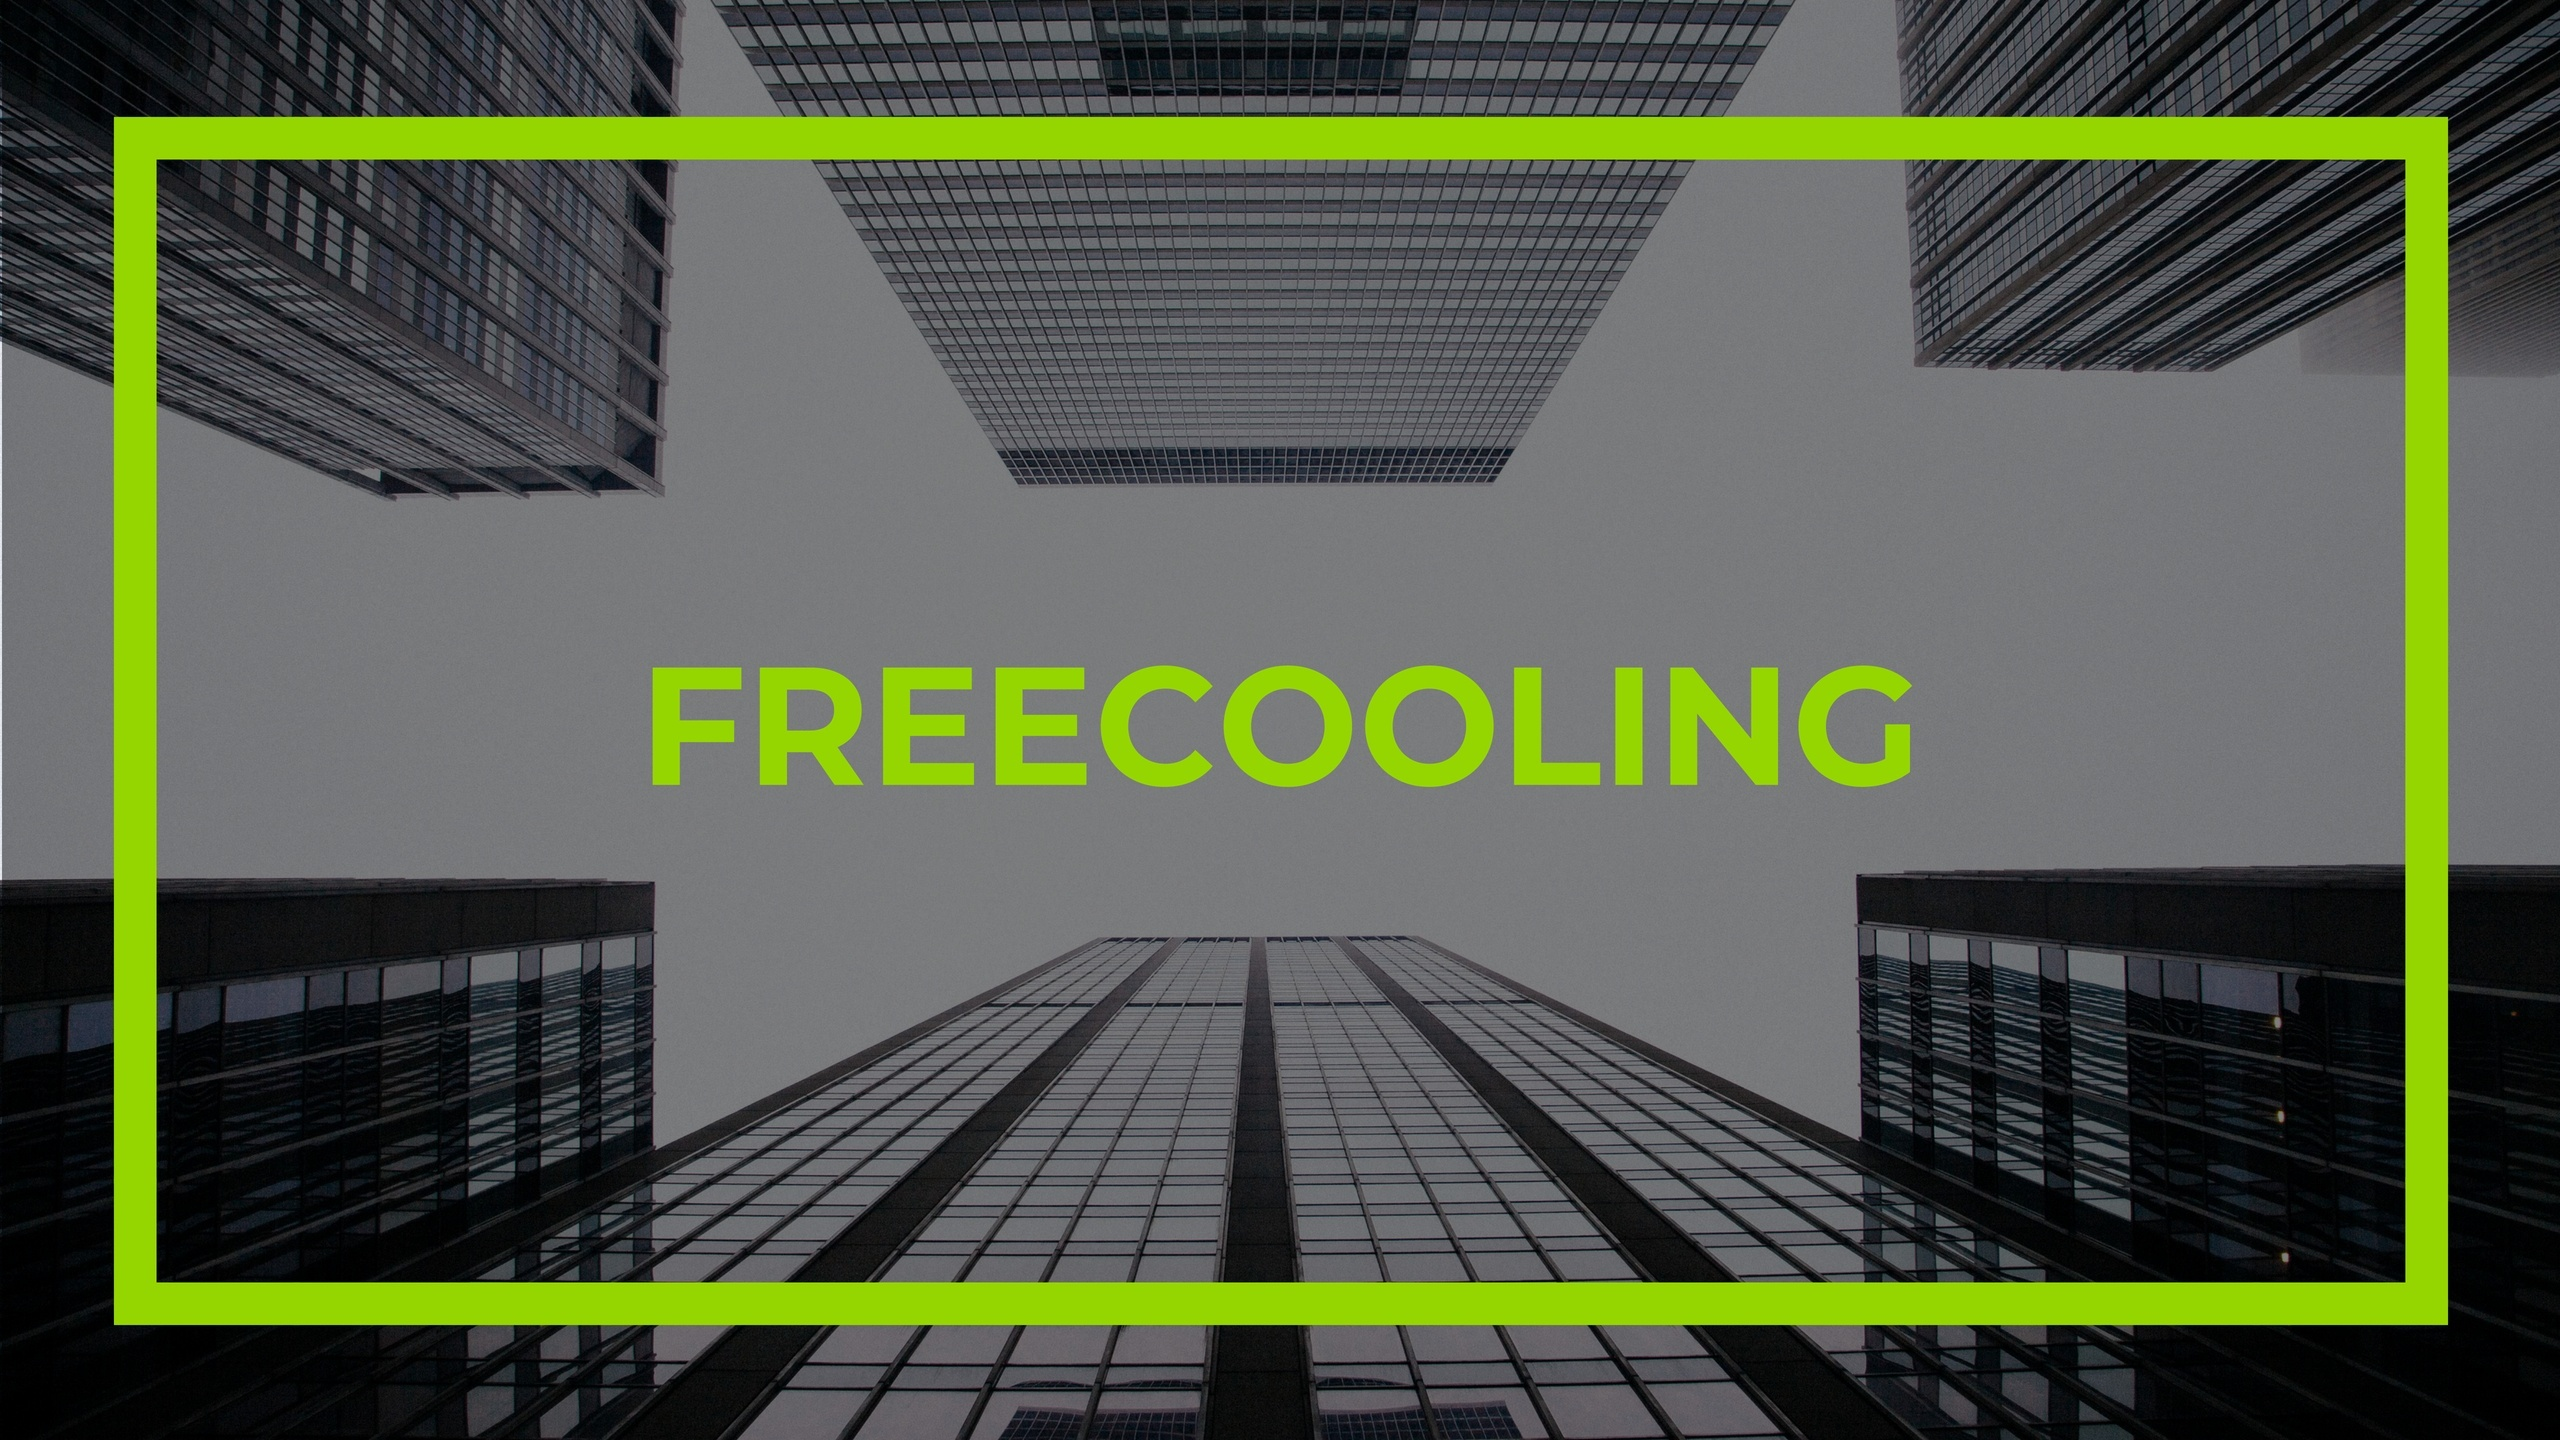 About Aermec Freecooling